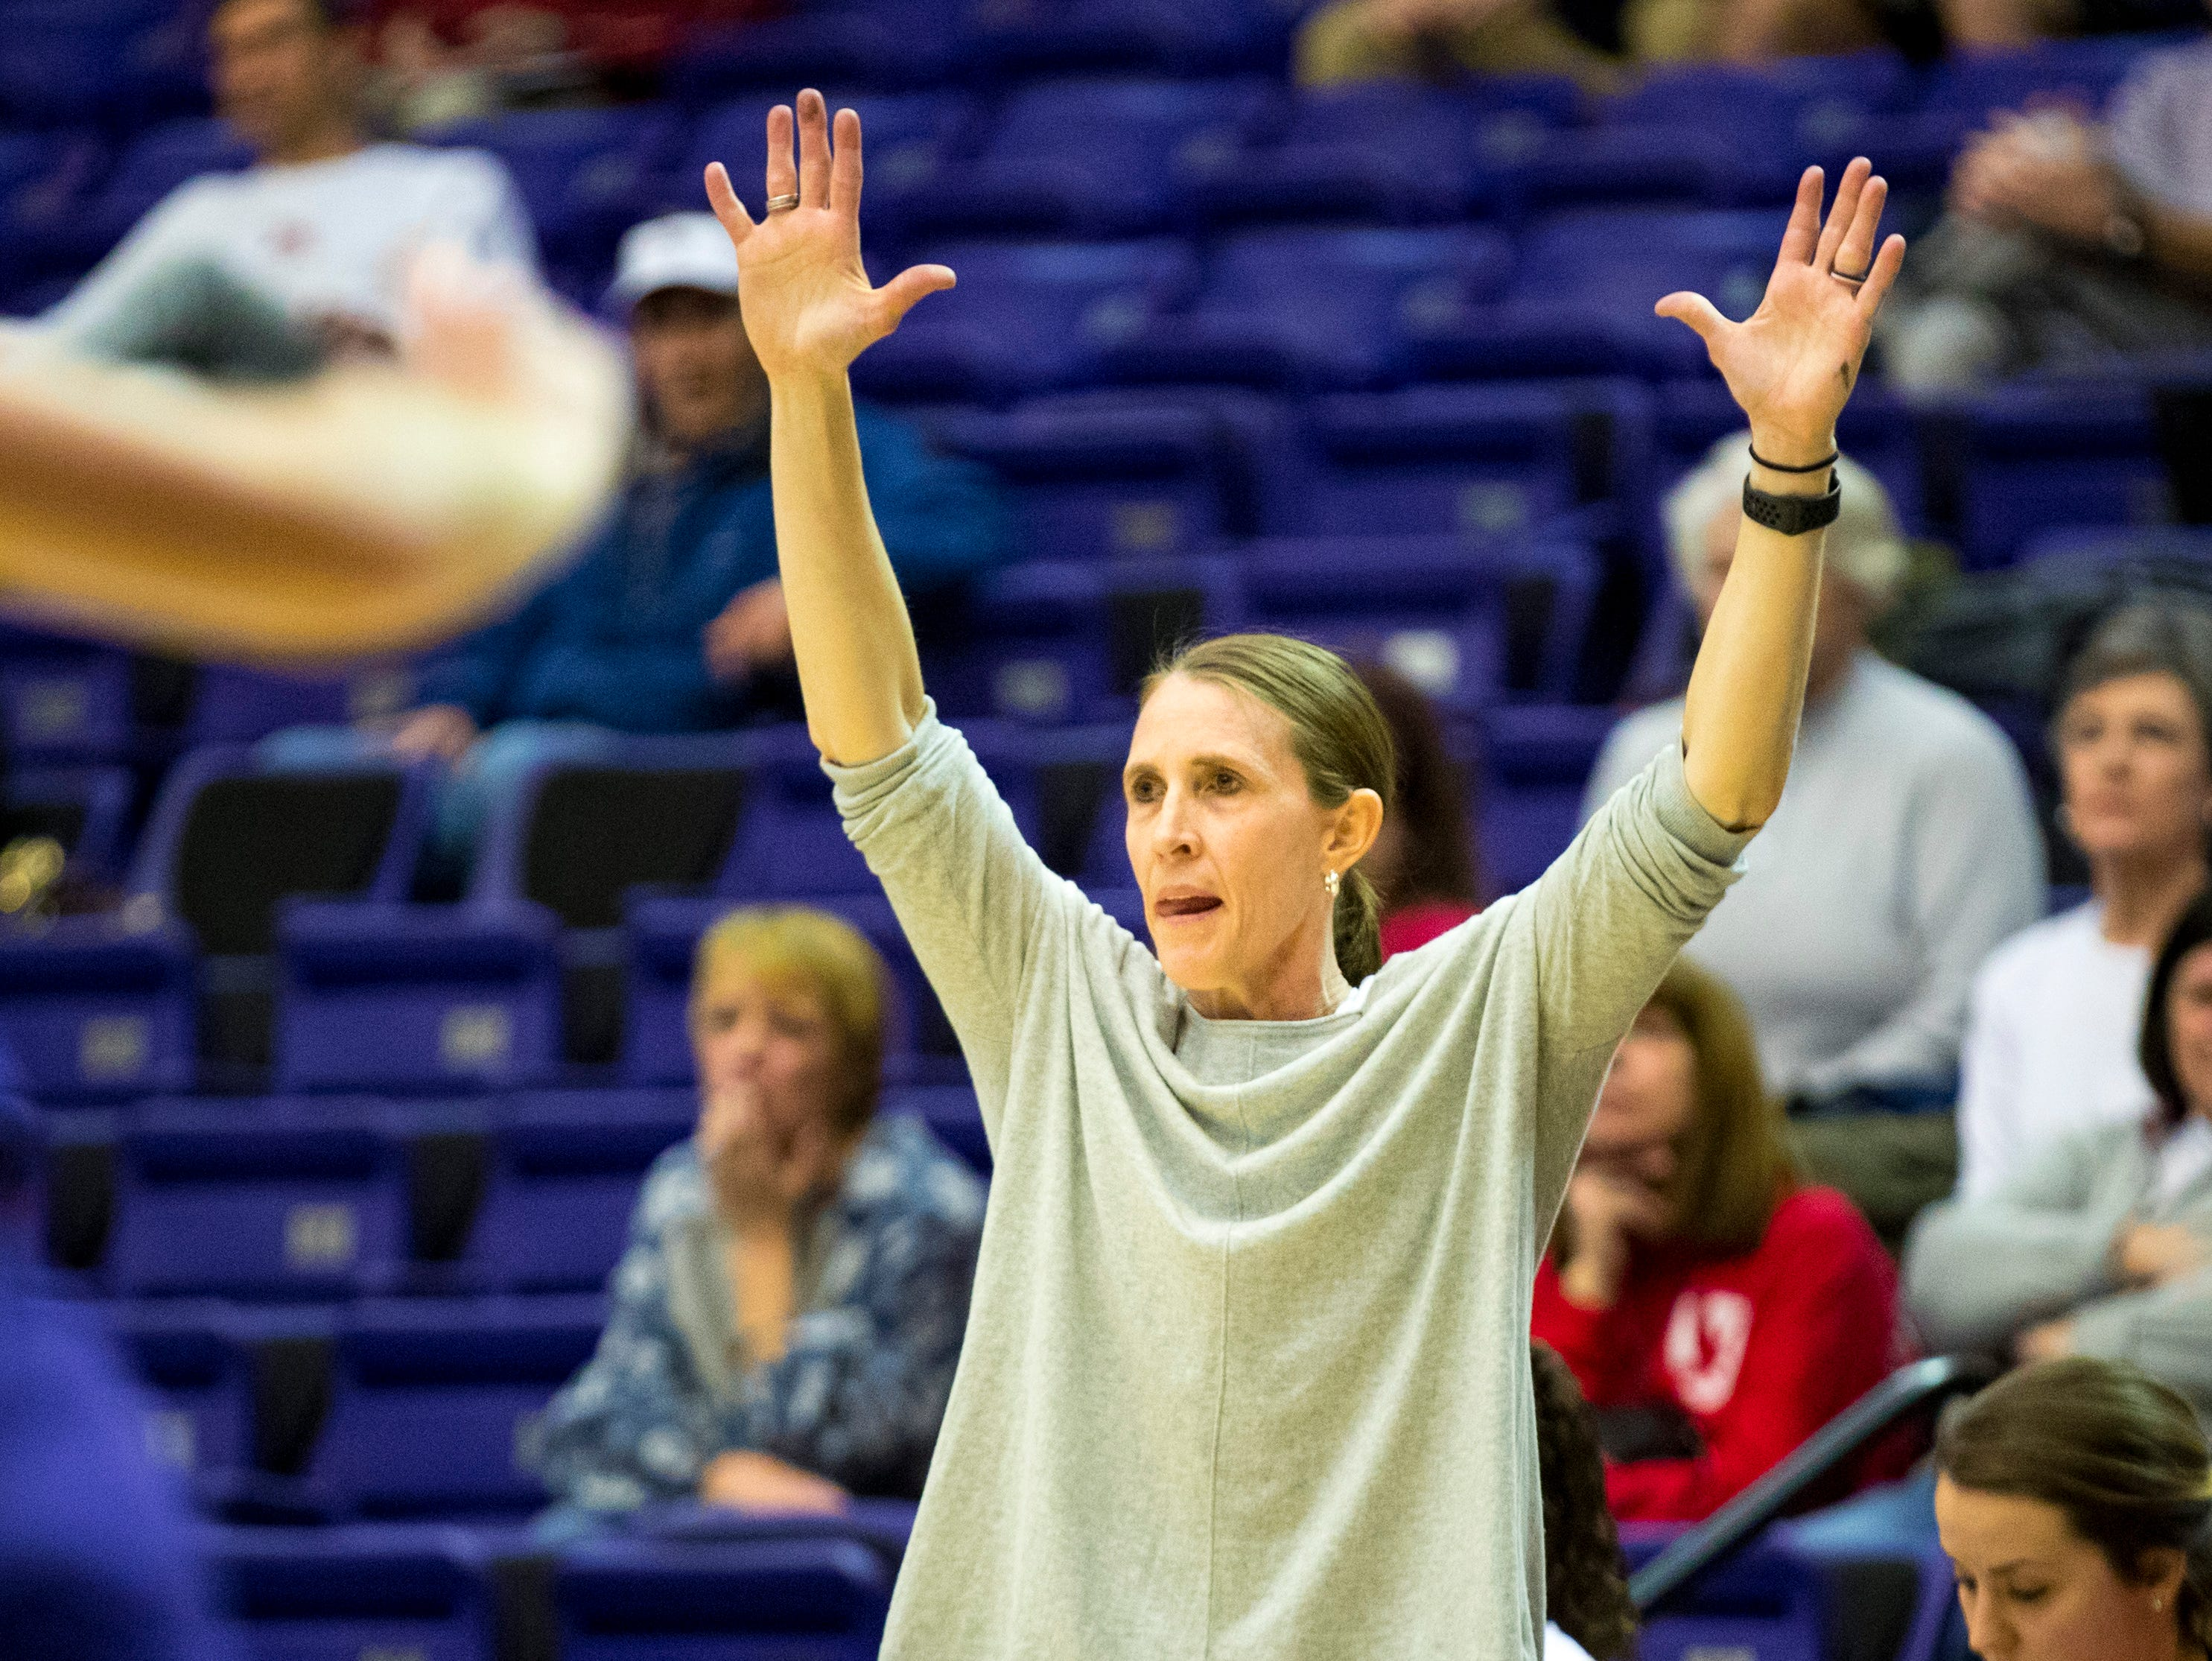 Brentwood Academy girls basketball coach Rhonda Brown signals to her players during Brentwood Academy's game against Father Ryan in the semifinal round of the TSSAA Division II Class AA State Championships at Lipscomb University's Allen Arena in Nashville on Thursday, Feb. 28, 2019.